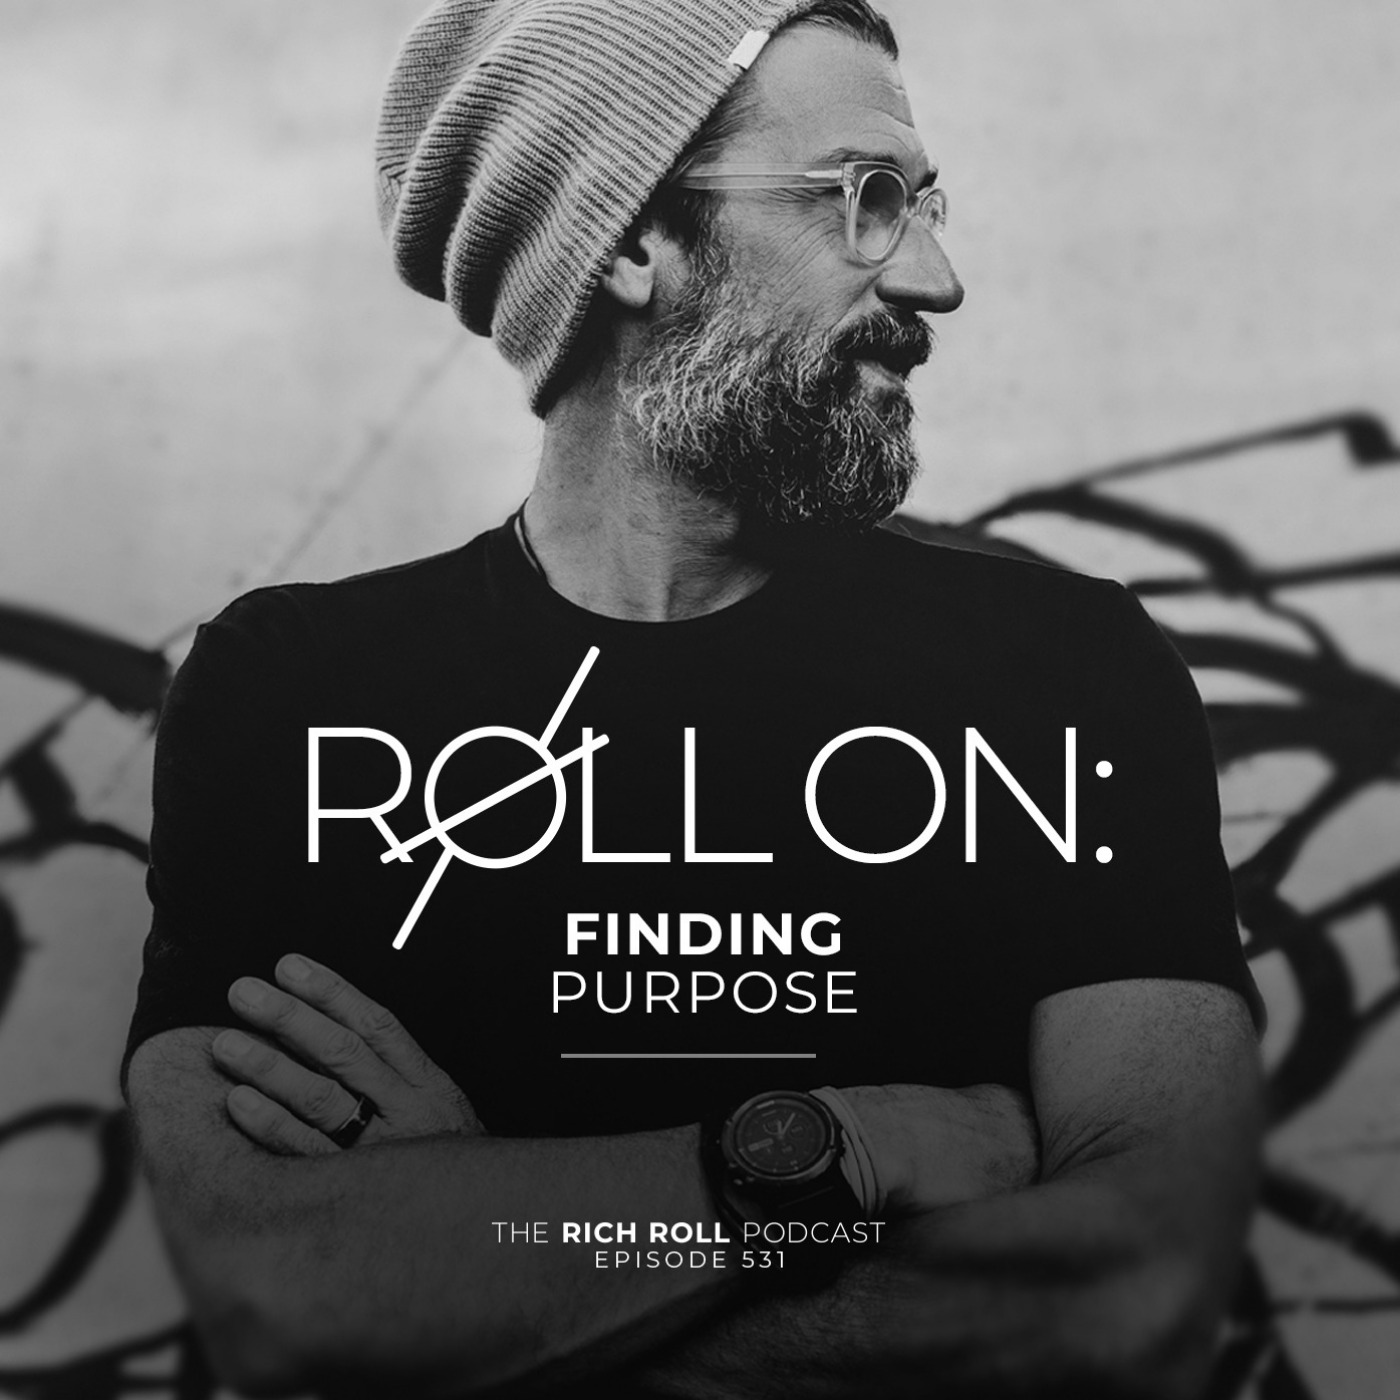 Podcast Episode: Roll On: Finding Purpose